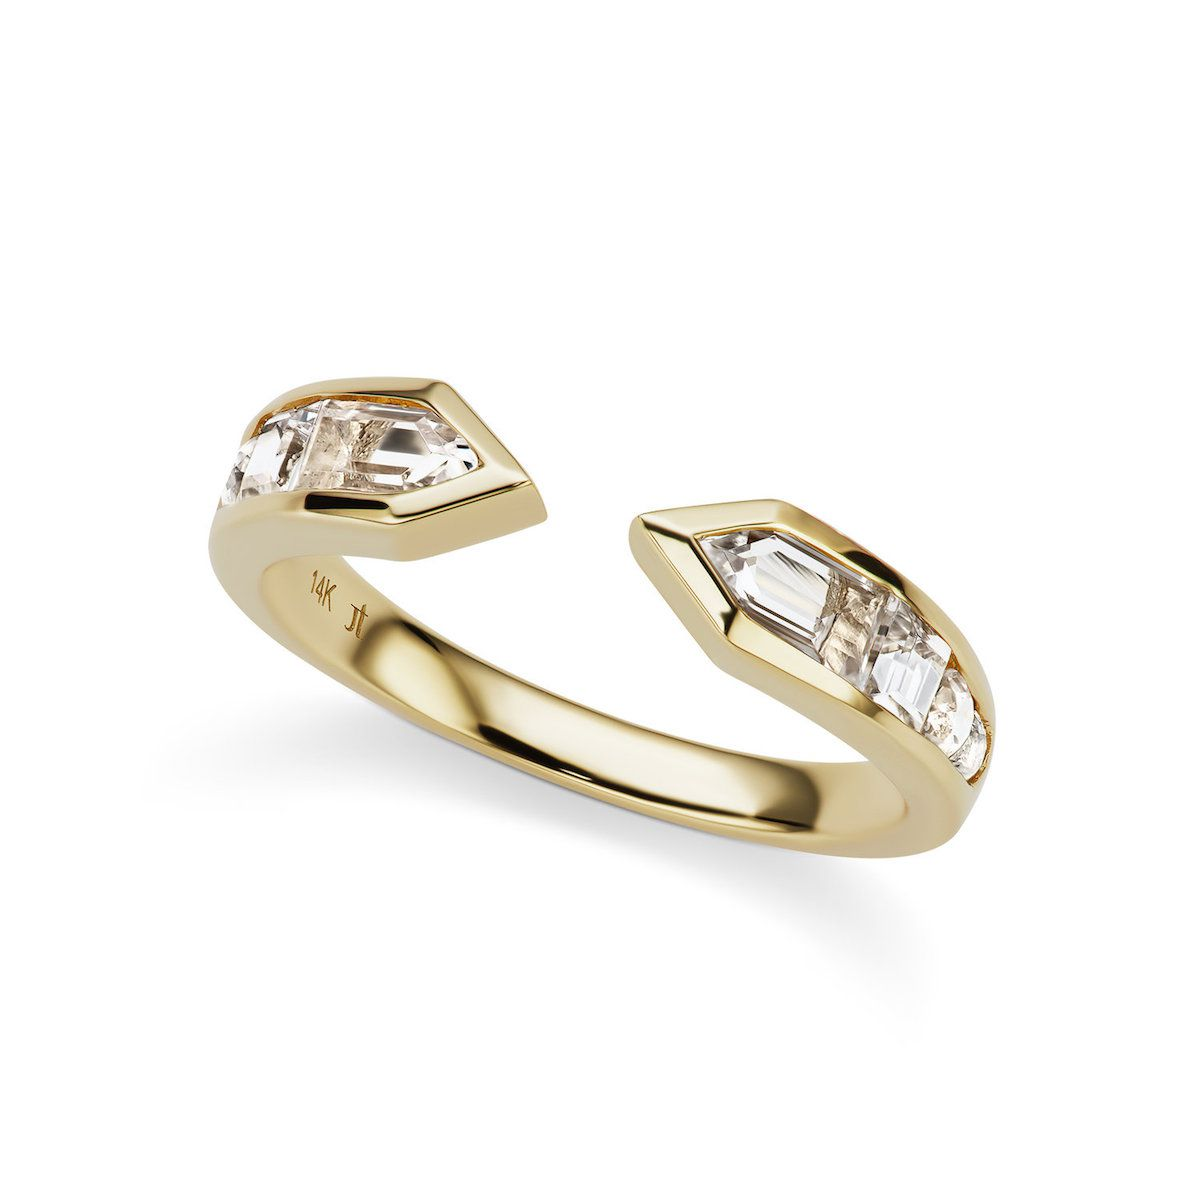 Jane Taylor Cirque Meeting Arrows Ring with White Topaz